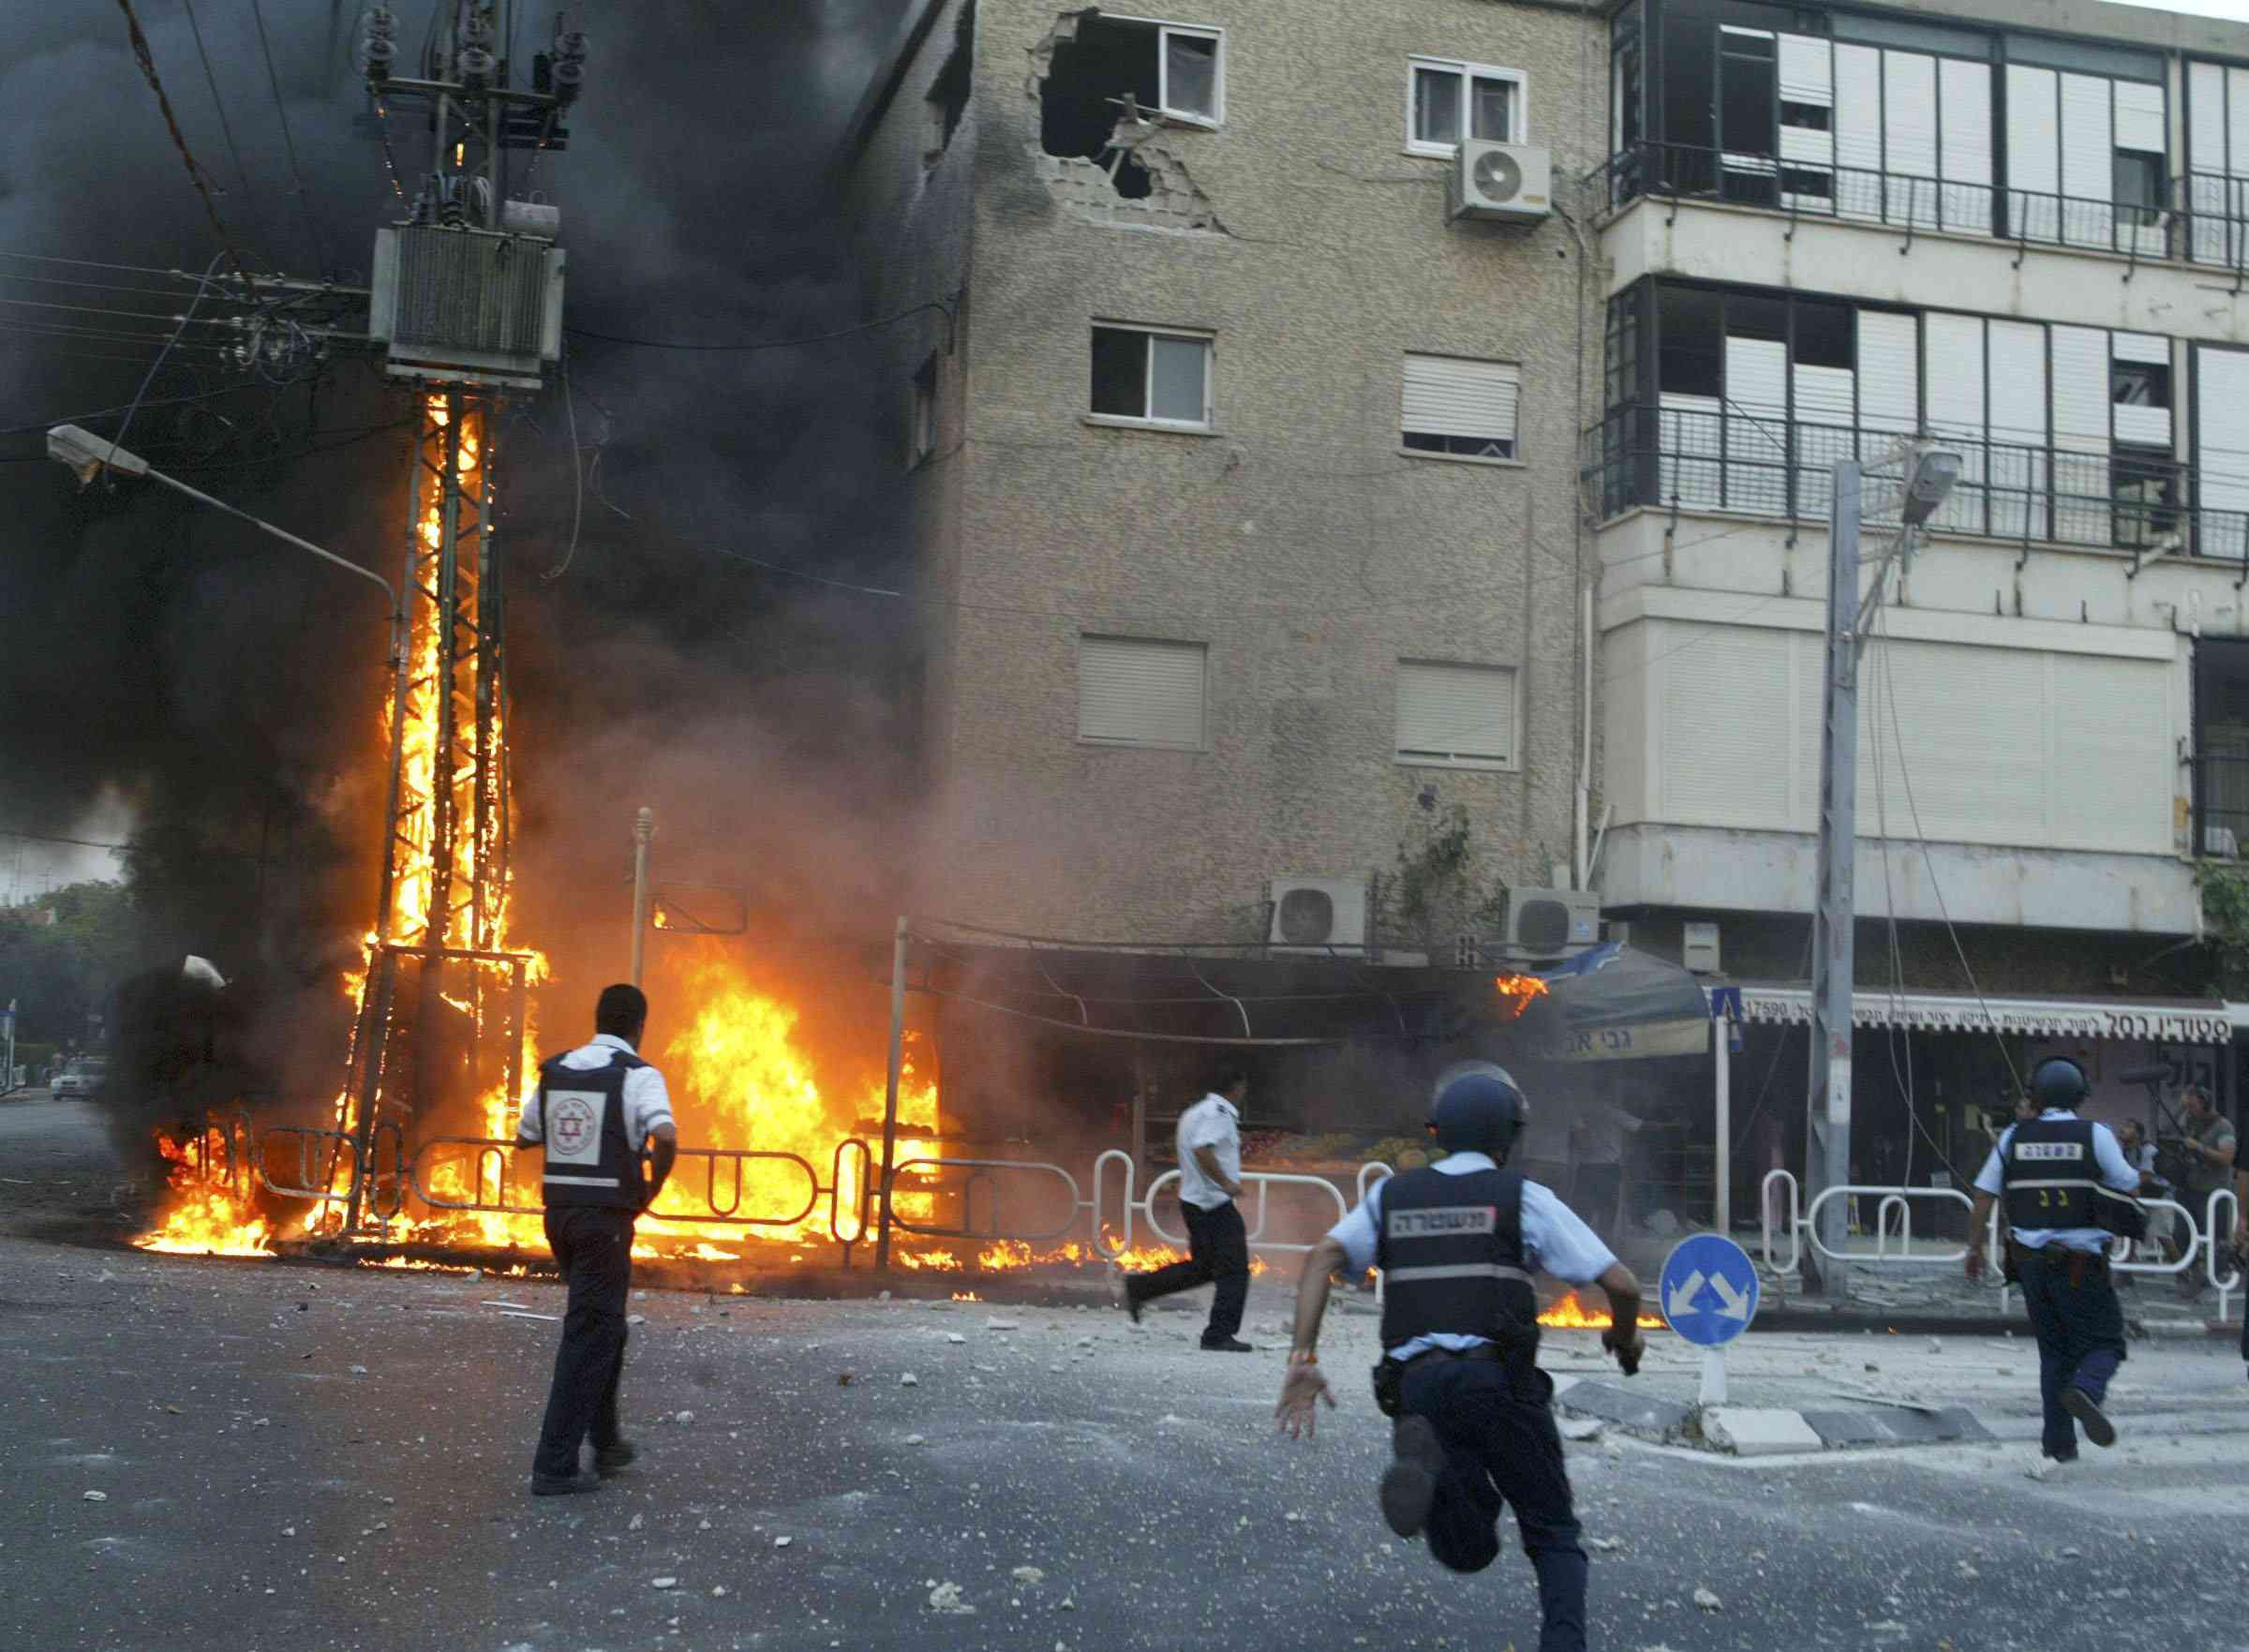 Israeli policemen rush to the scene of a burning electricity pylon and damaged building moments after a volley of Hezbollah rockets struck July 13, 2006 in the northern town of Nahariya, Israel.